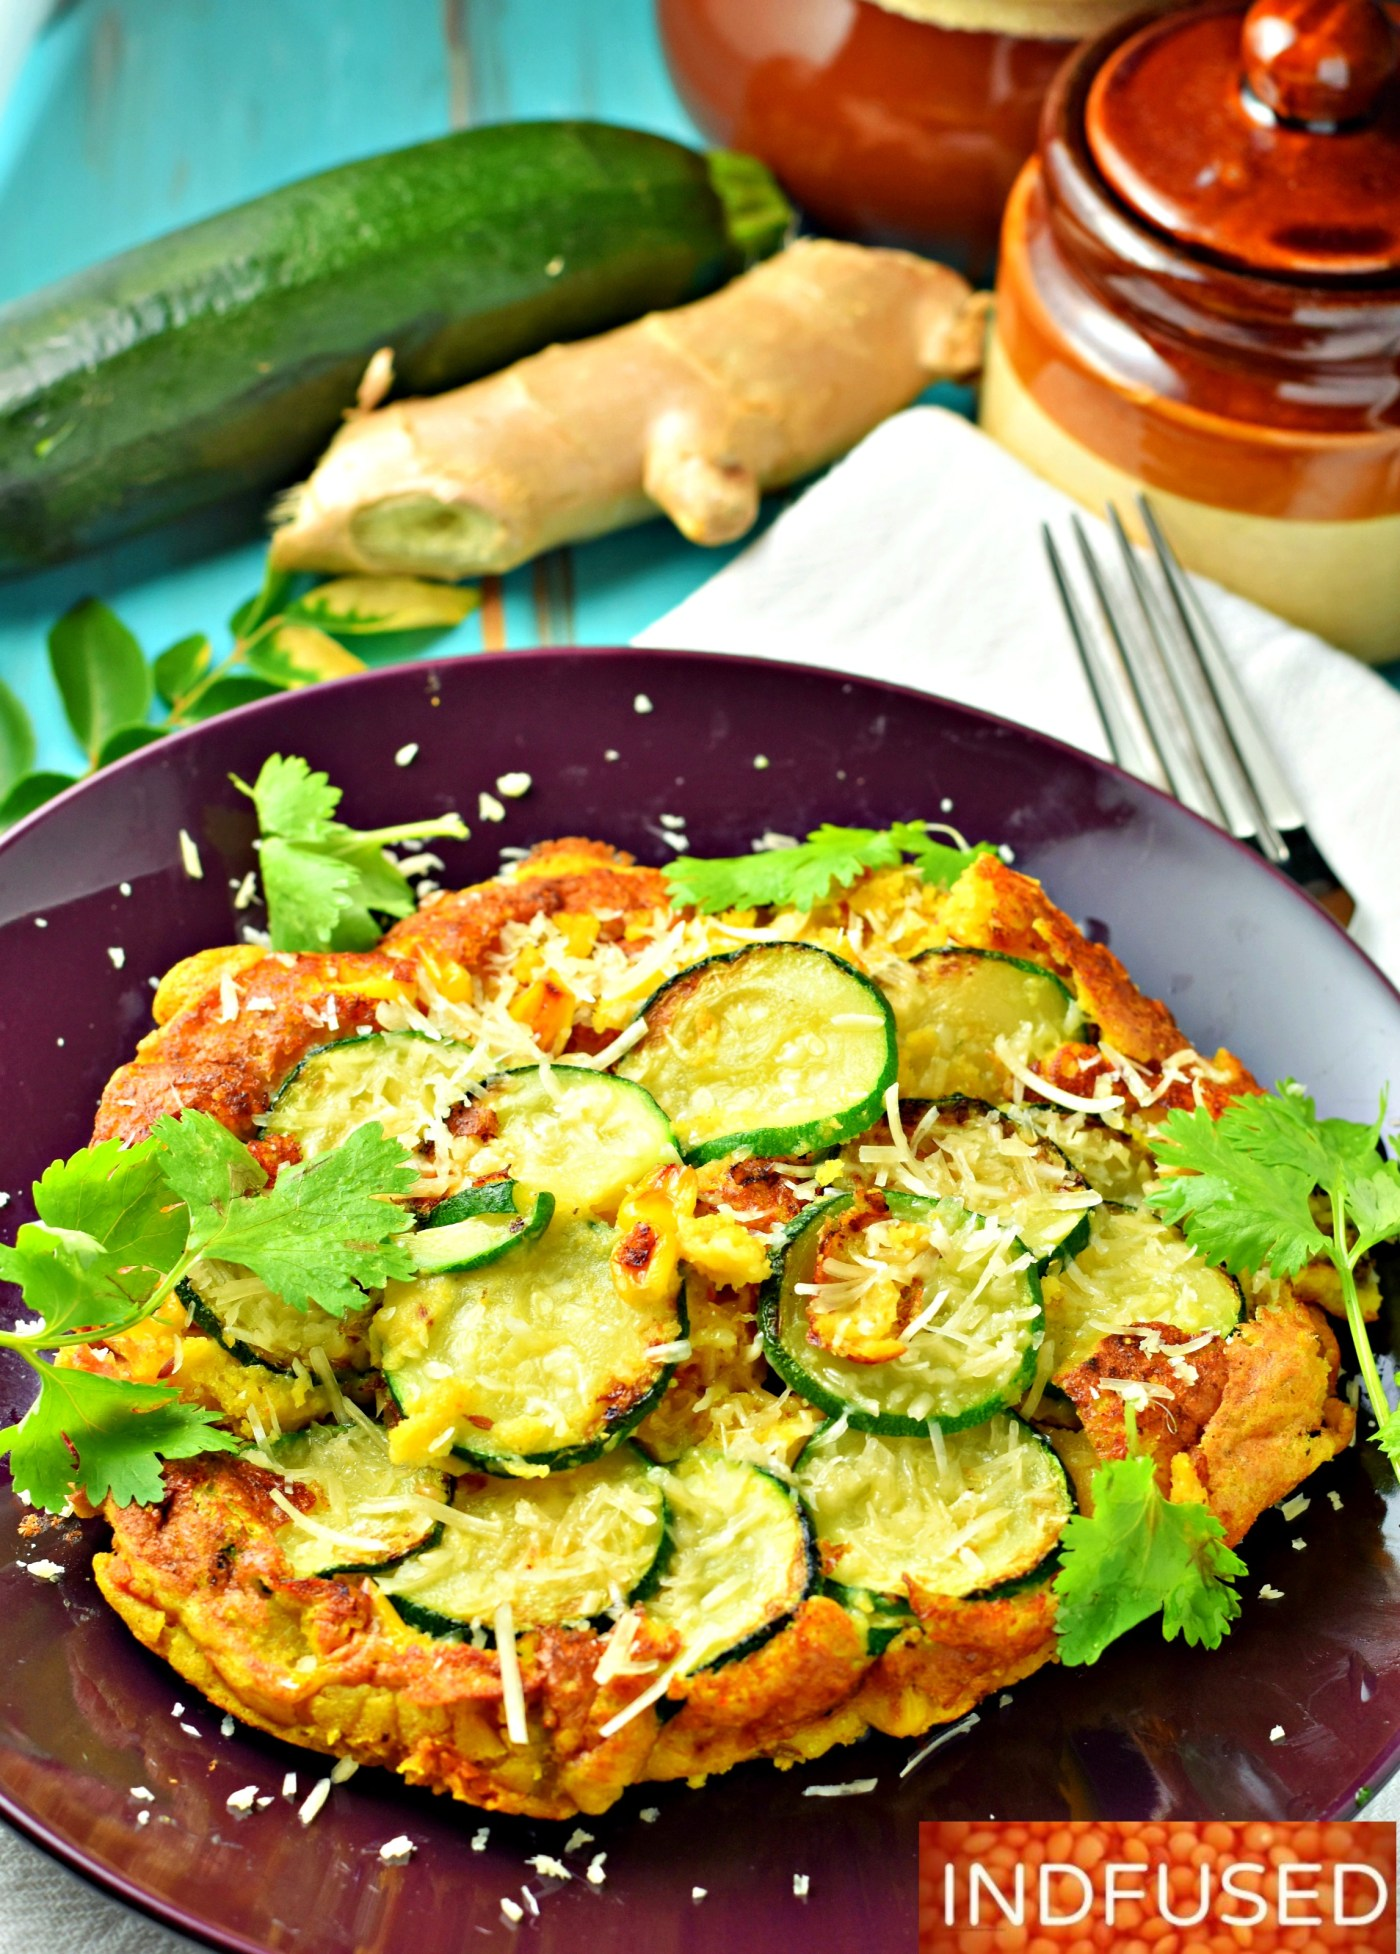 Zesty Zucchini Corn Cakes- vegan option in recipe, vegetarian, low fat recipe that is easy to make. serves 2